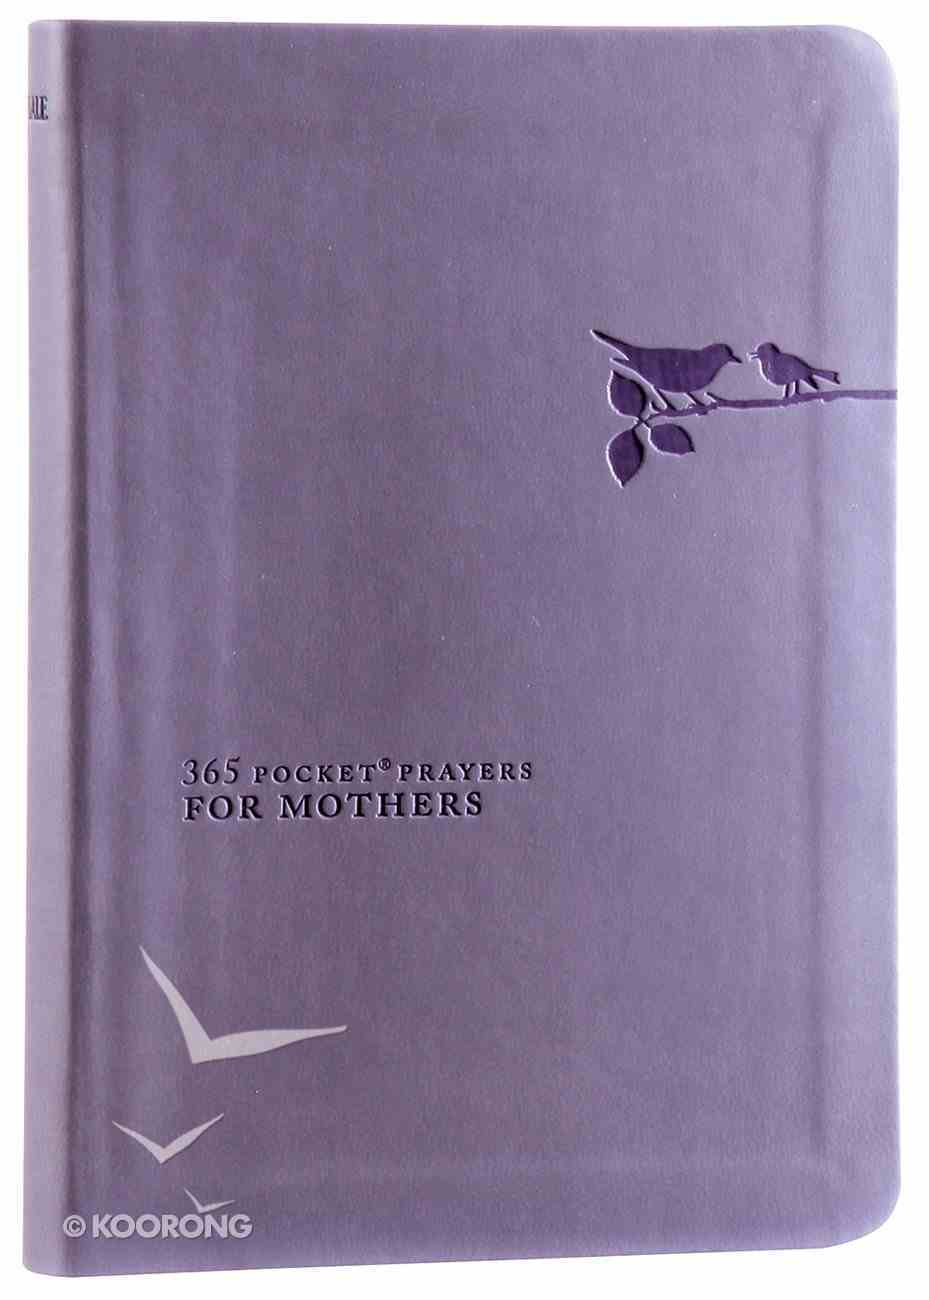 365 Pocket Prayers For Mothers: Guidance and Wisdom For Each New Day Imitation Leather